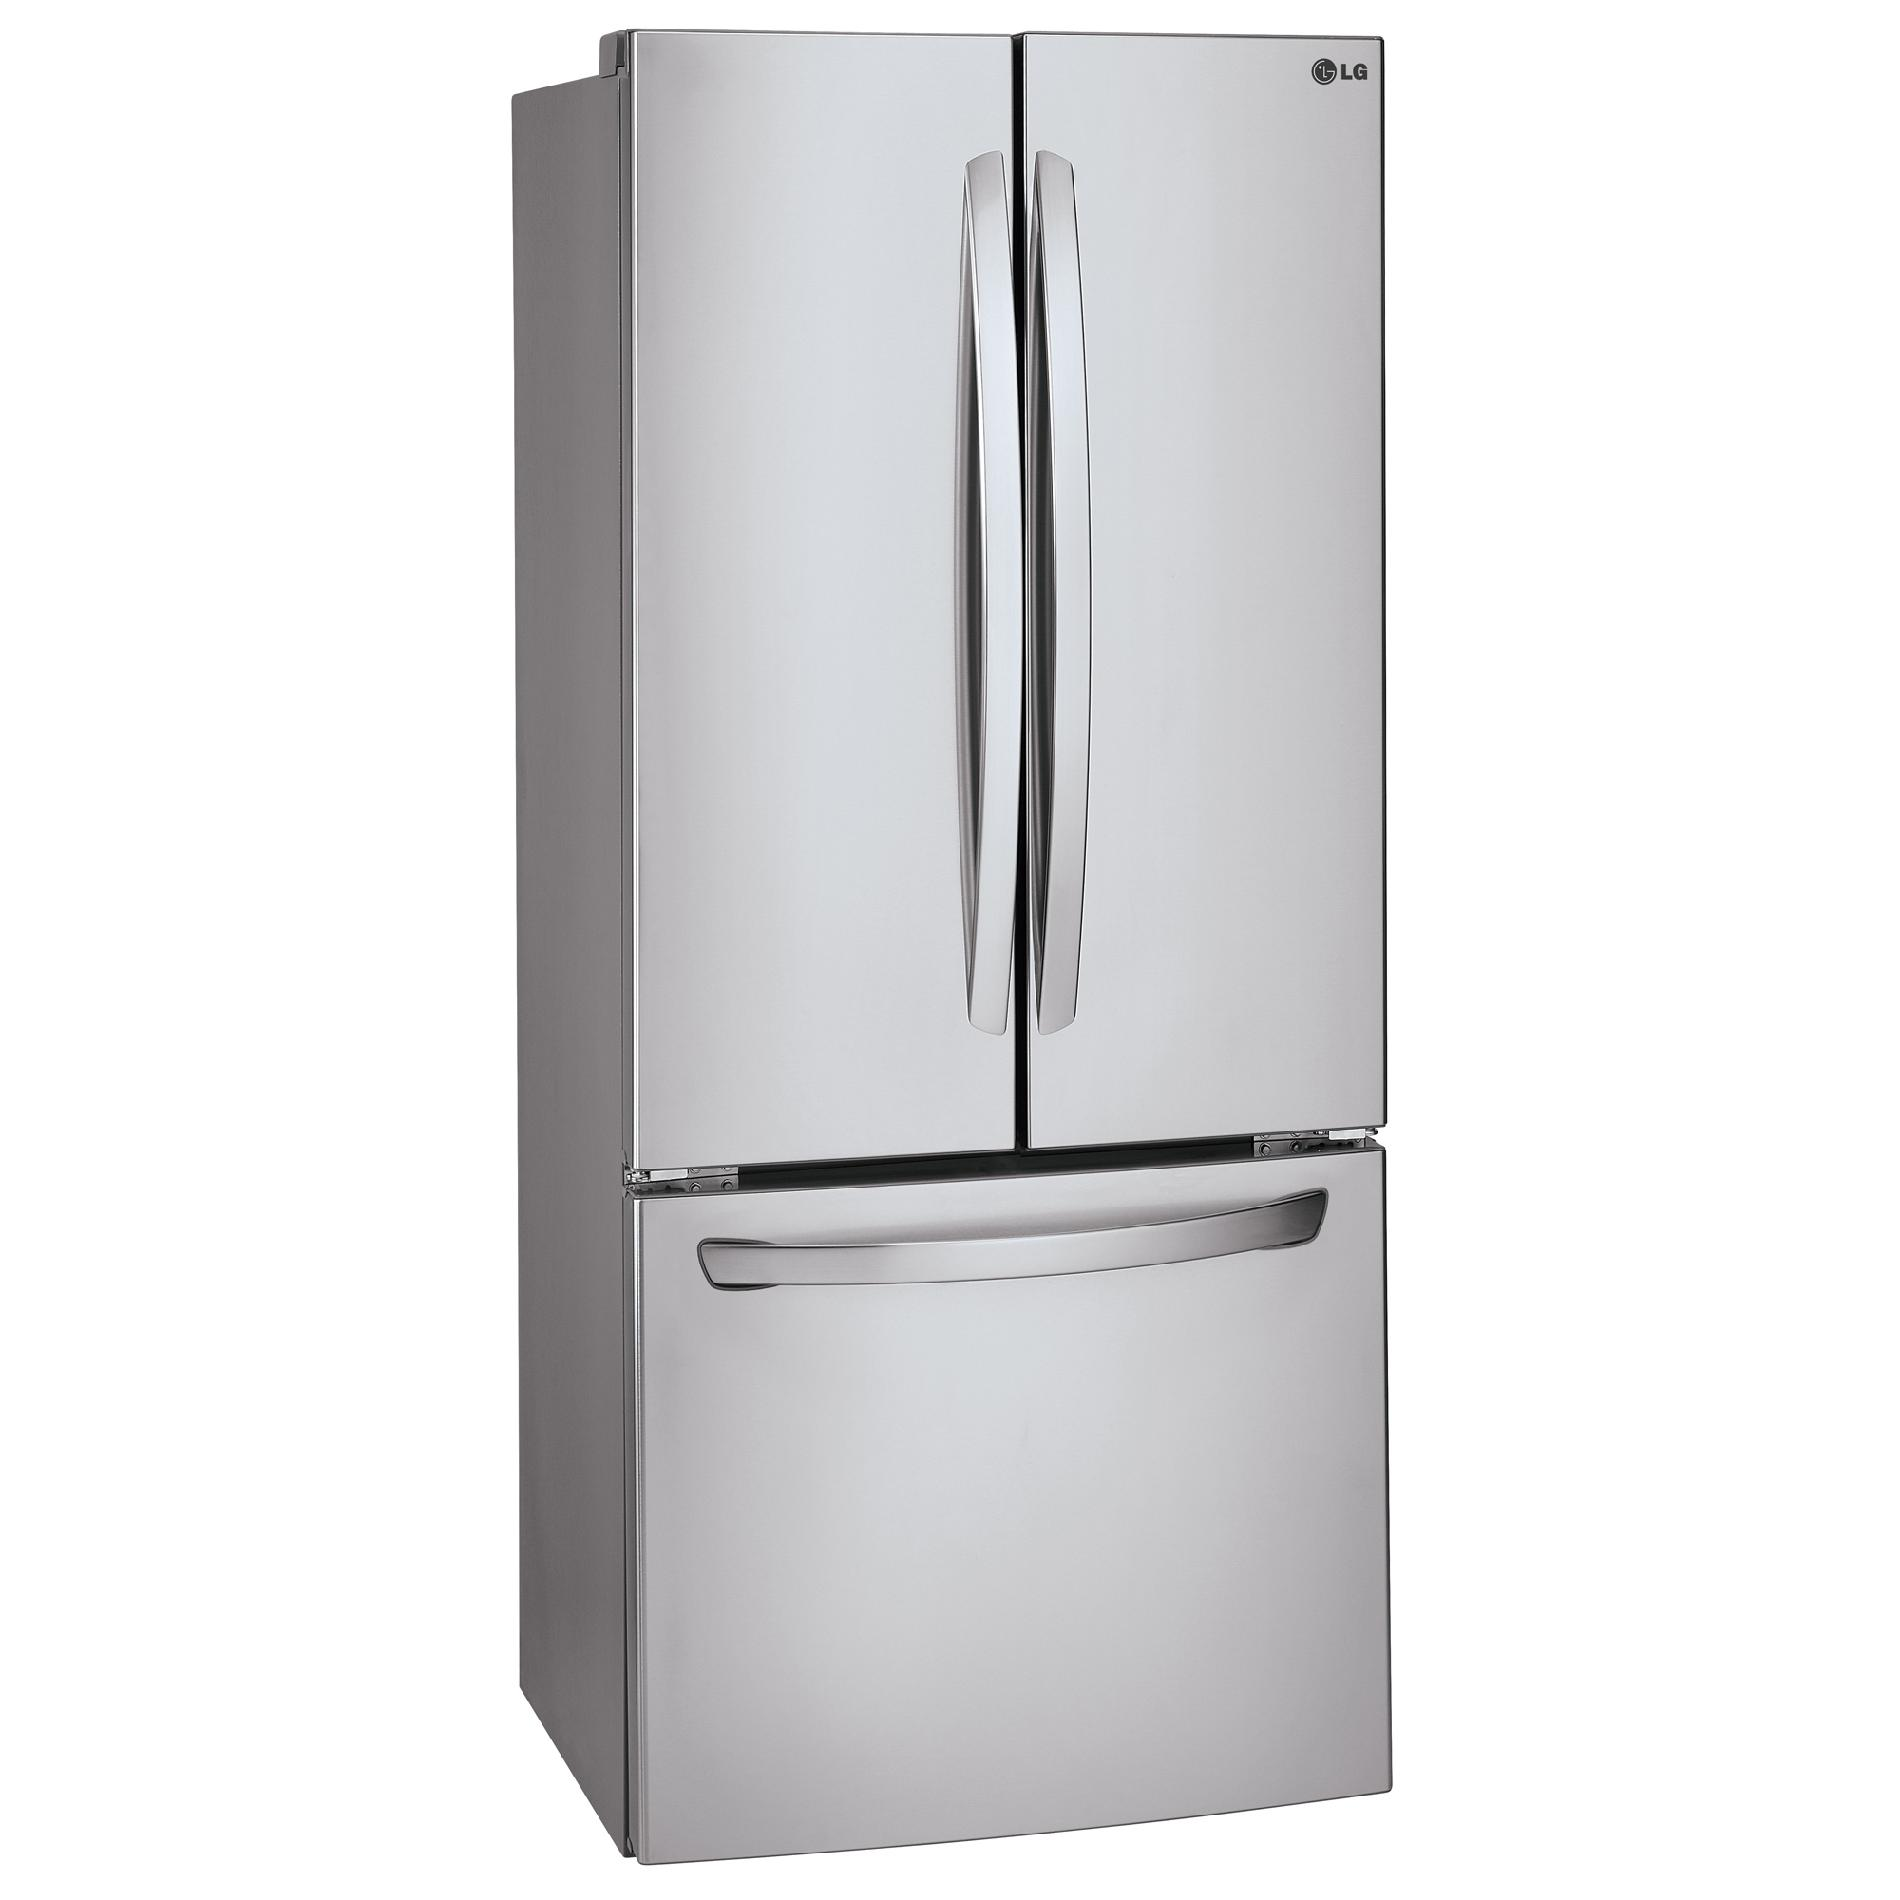 LG LFC22770ST 21.8 cu. ft. French Door Bottom-Freezer Refrigerator